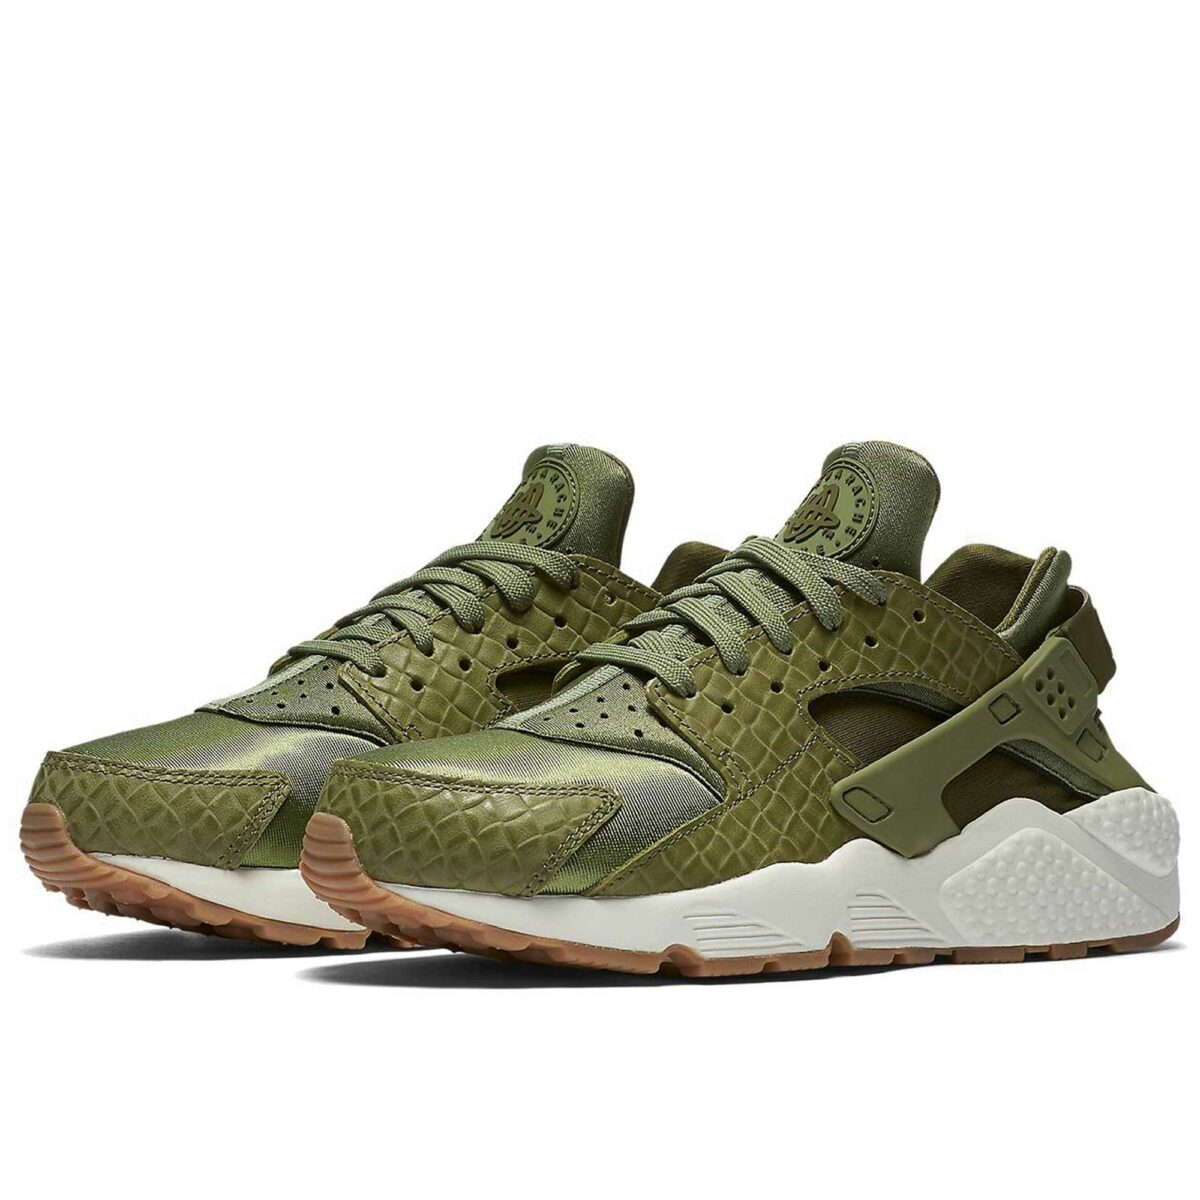 nike air huarache run premium green sail 683818_300 купить